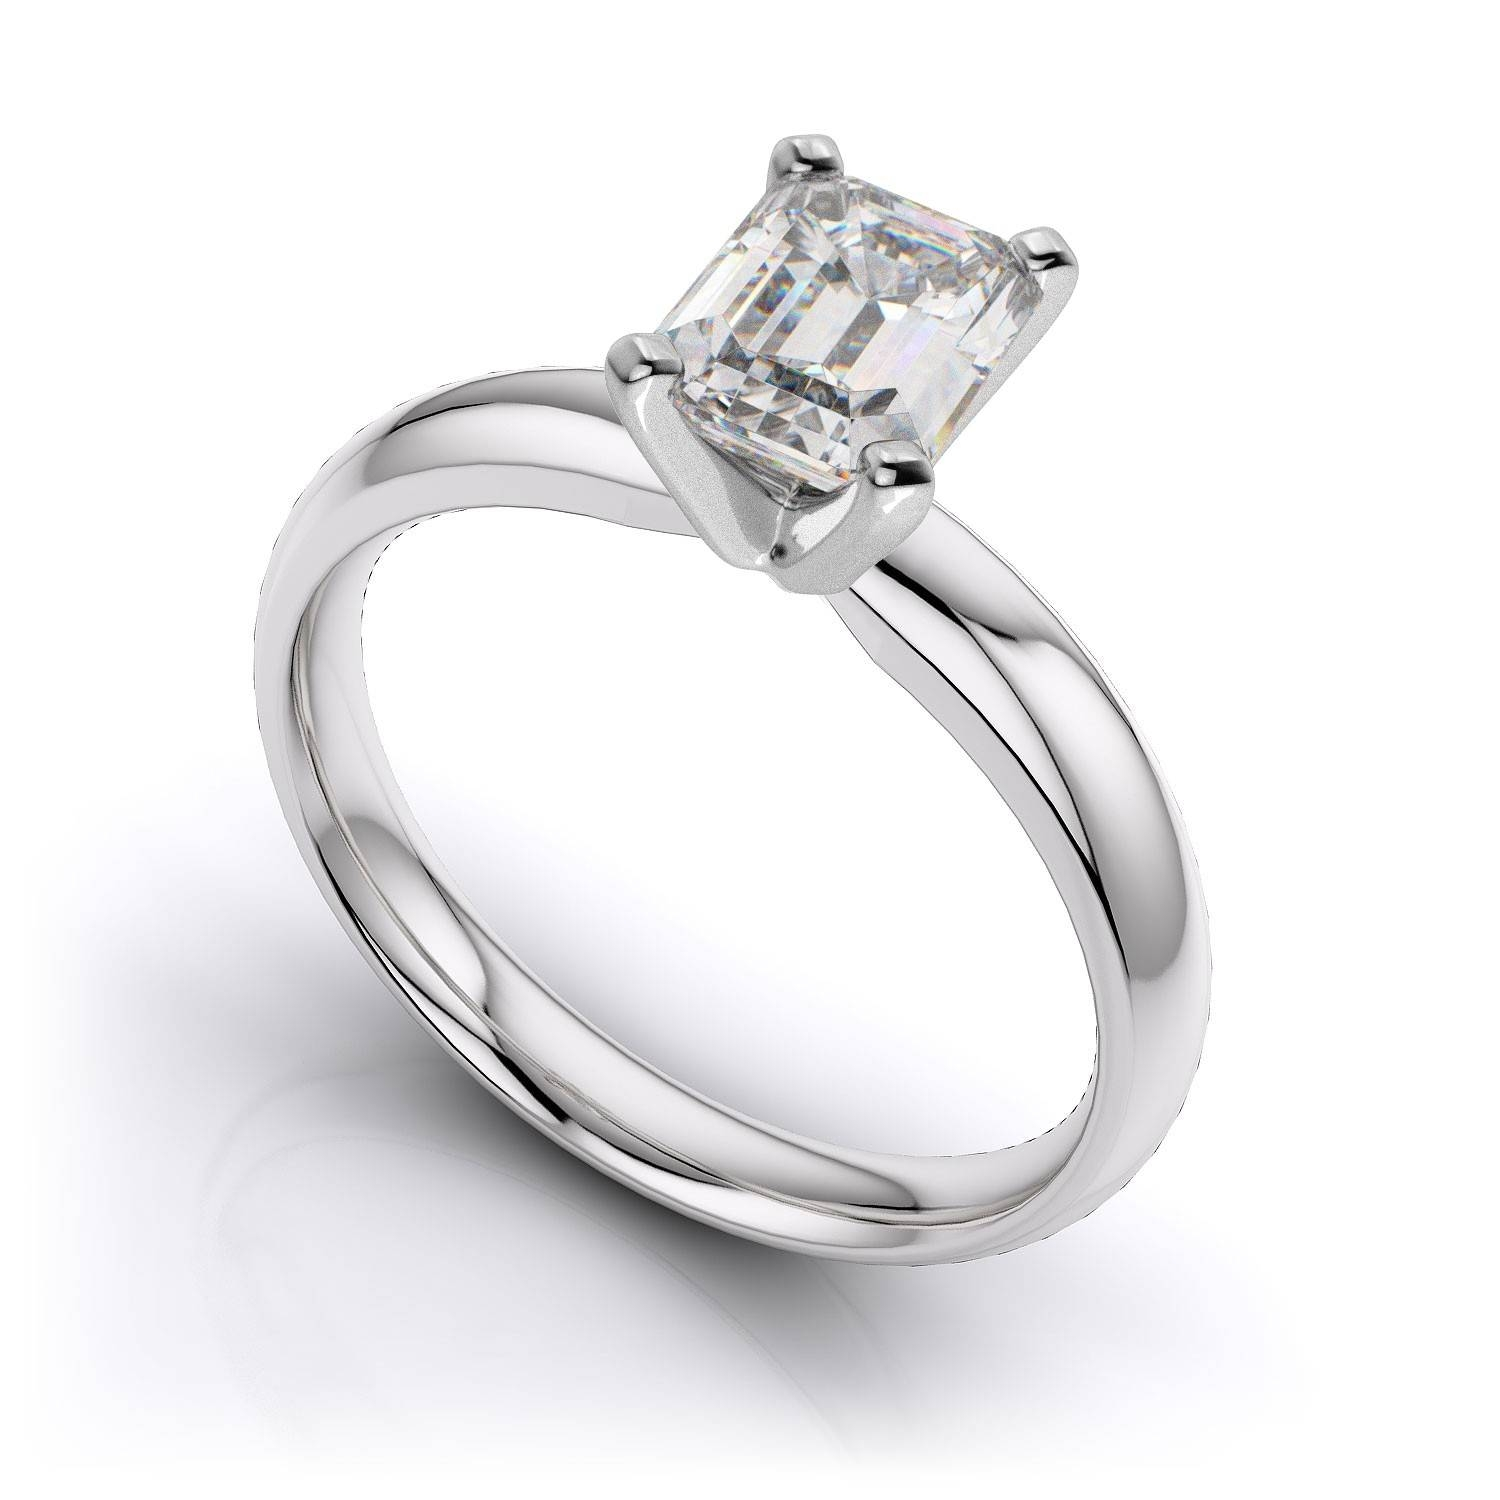 Emerald Cut Solitaire Diamond Engagement Ring – Platinum Within Diamond Wedding Rings Settings (View 8 of 15)